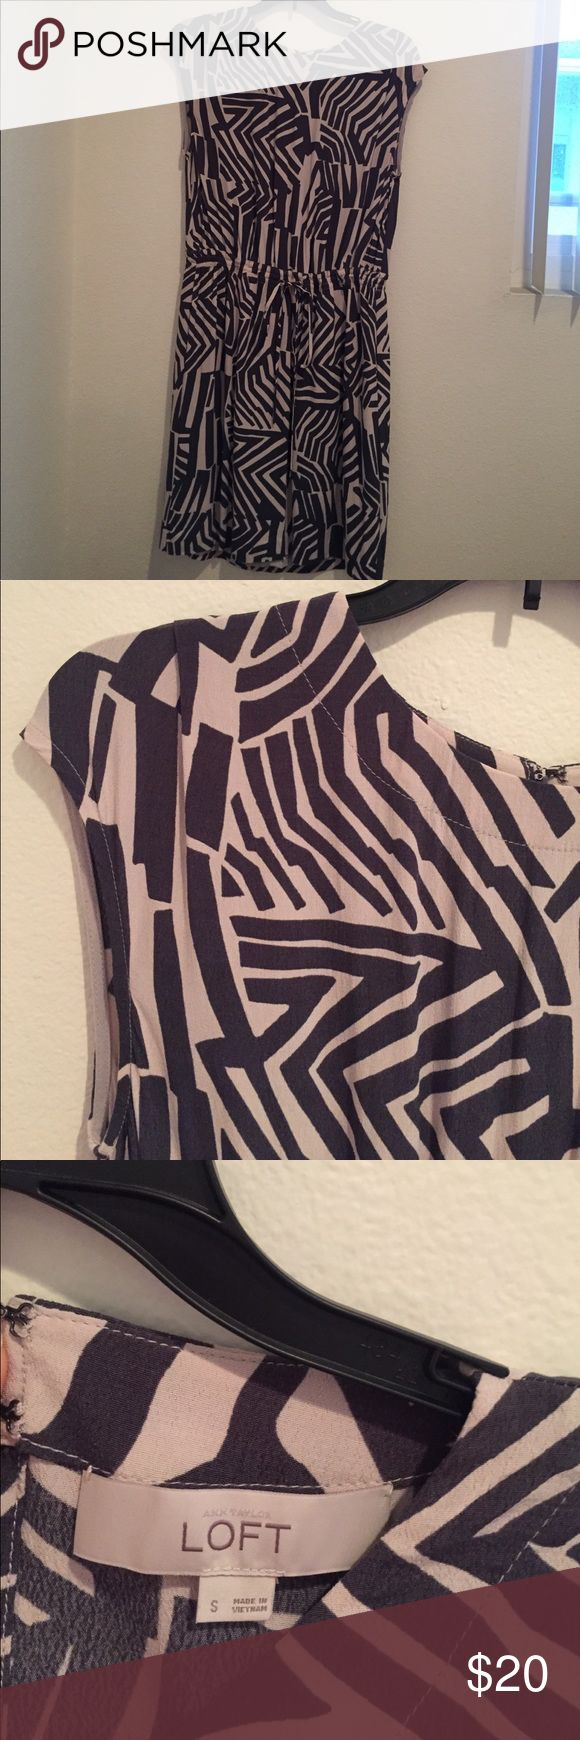 NEVER WORN! Loft Zebra Print Dress Small size.  I just did a price reduction so price is firm! LOFT Dresses